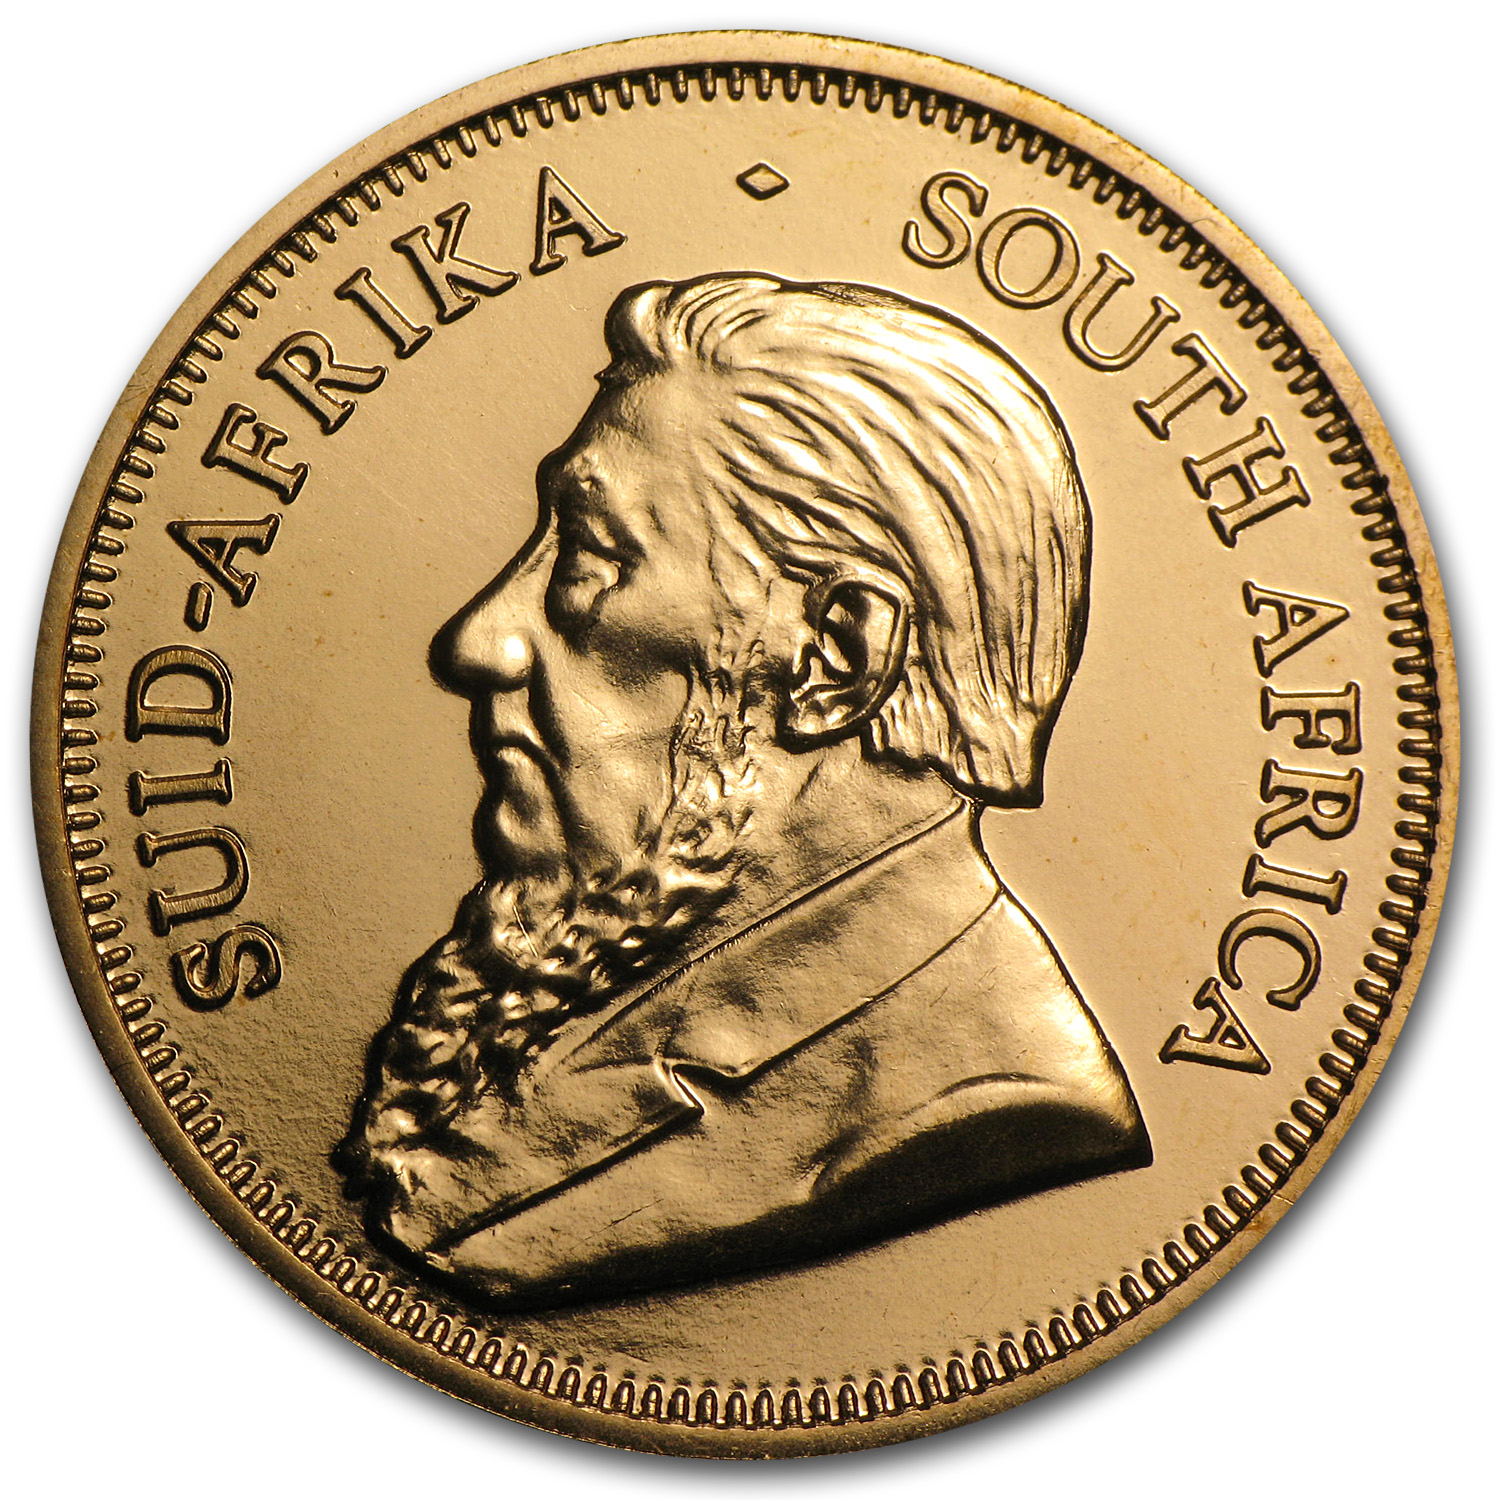 2009 South Africa 1/2 oz Gold Krugerrand